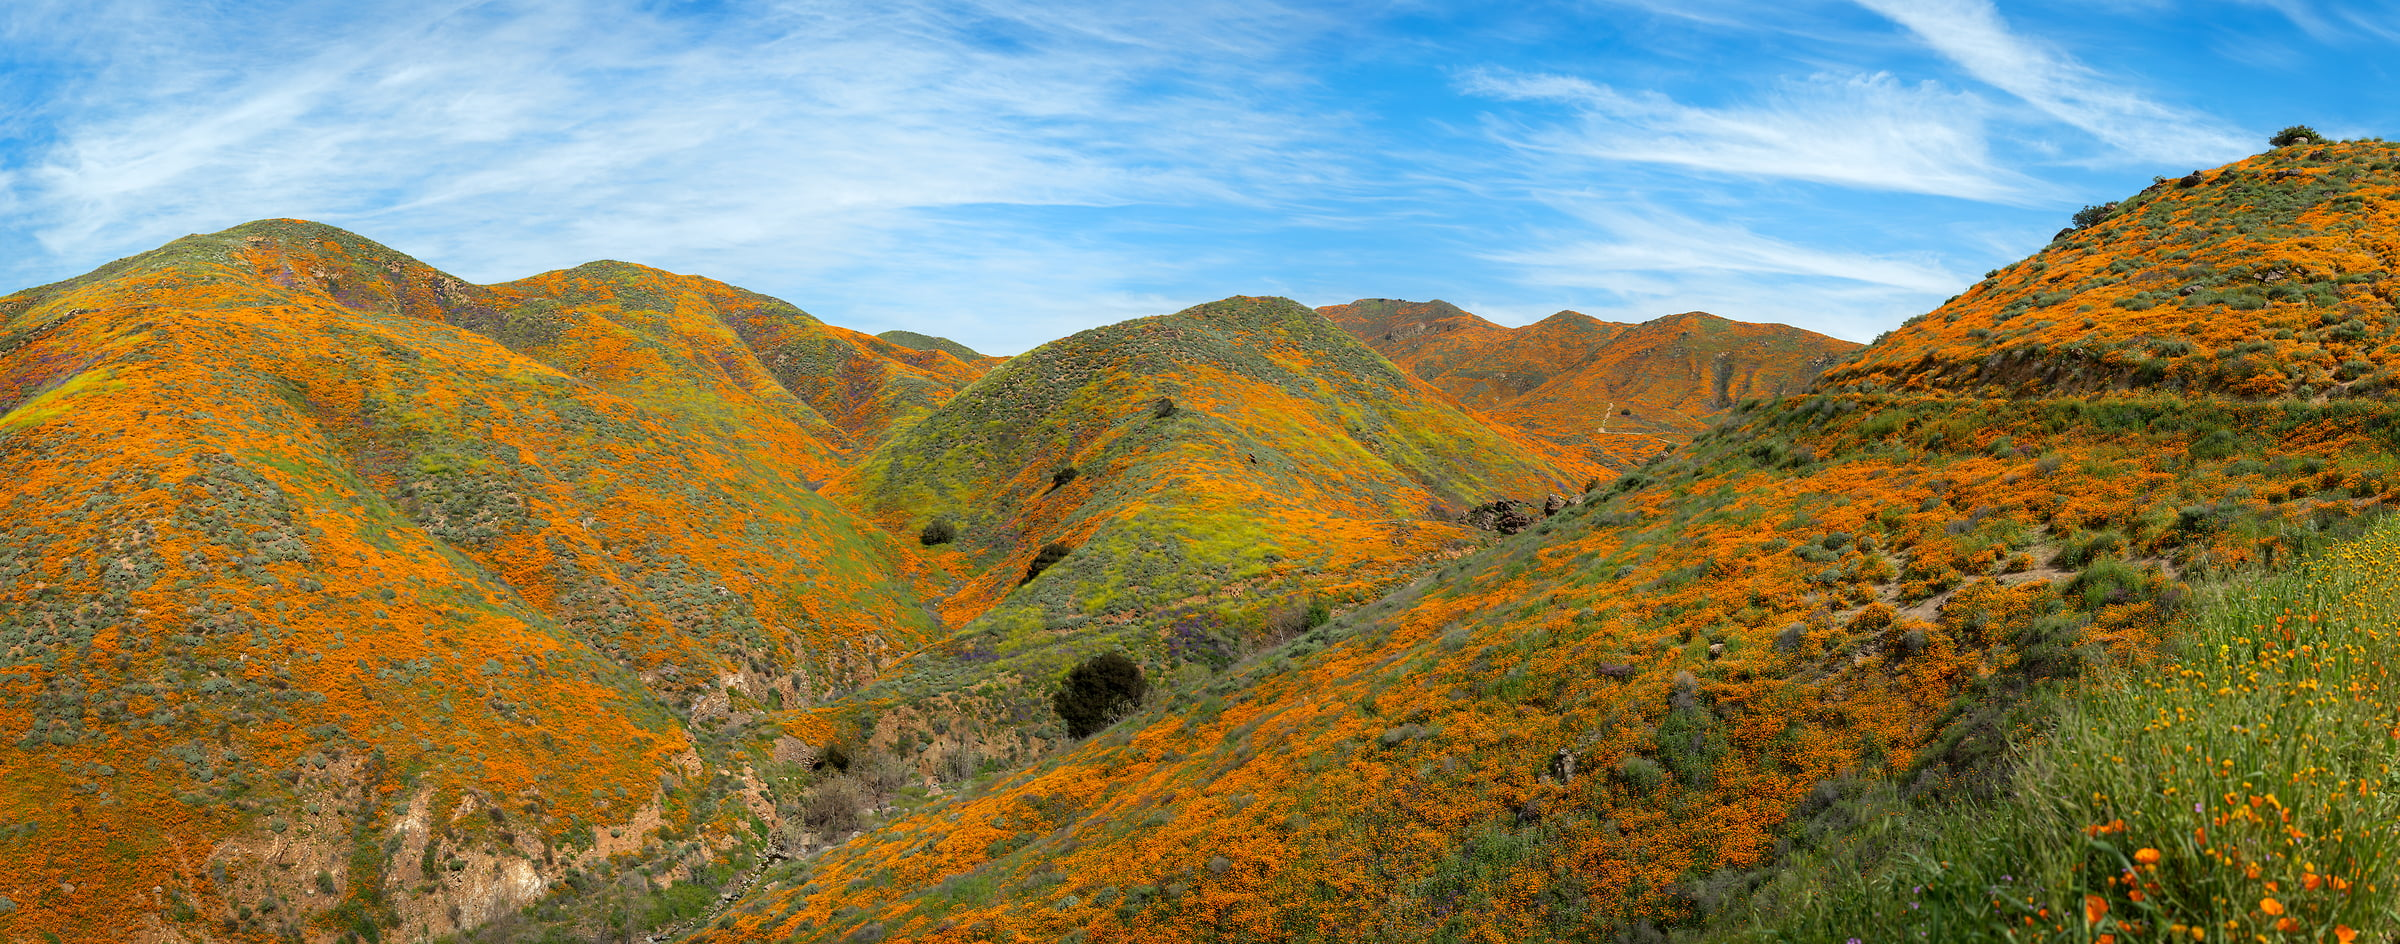 1,153 megapixels! A very high resolution, large-format VAST photo print of poppy wildflowers on the rolling hills and valleys of Walker Canyon; landscape photograph created by Jim Tarpo in Walker Canyon, California